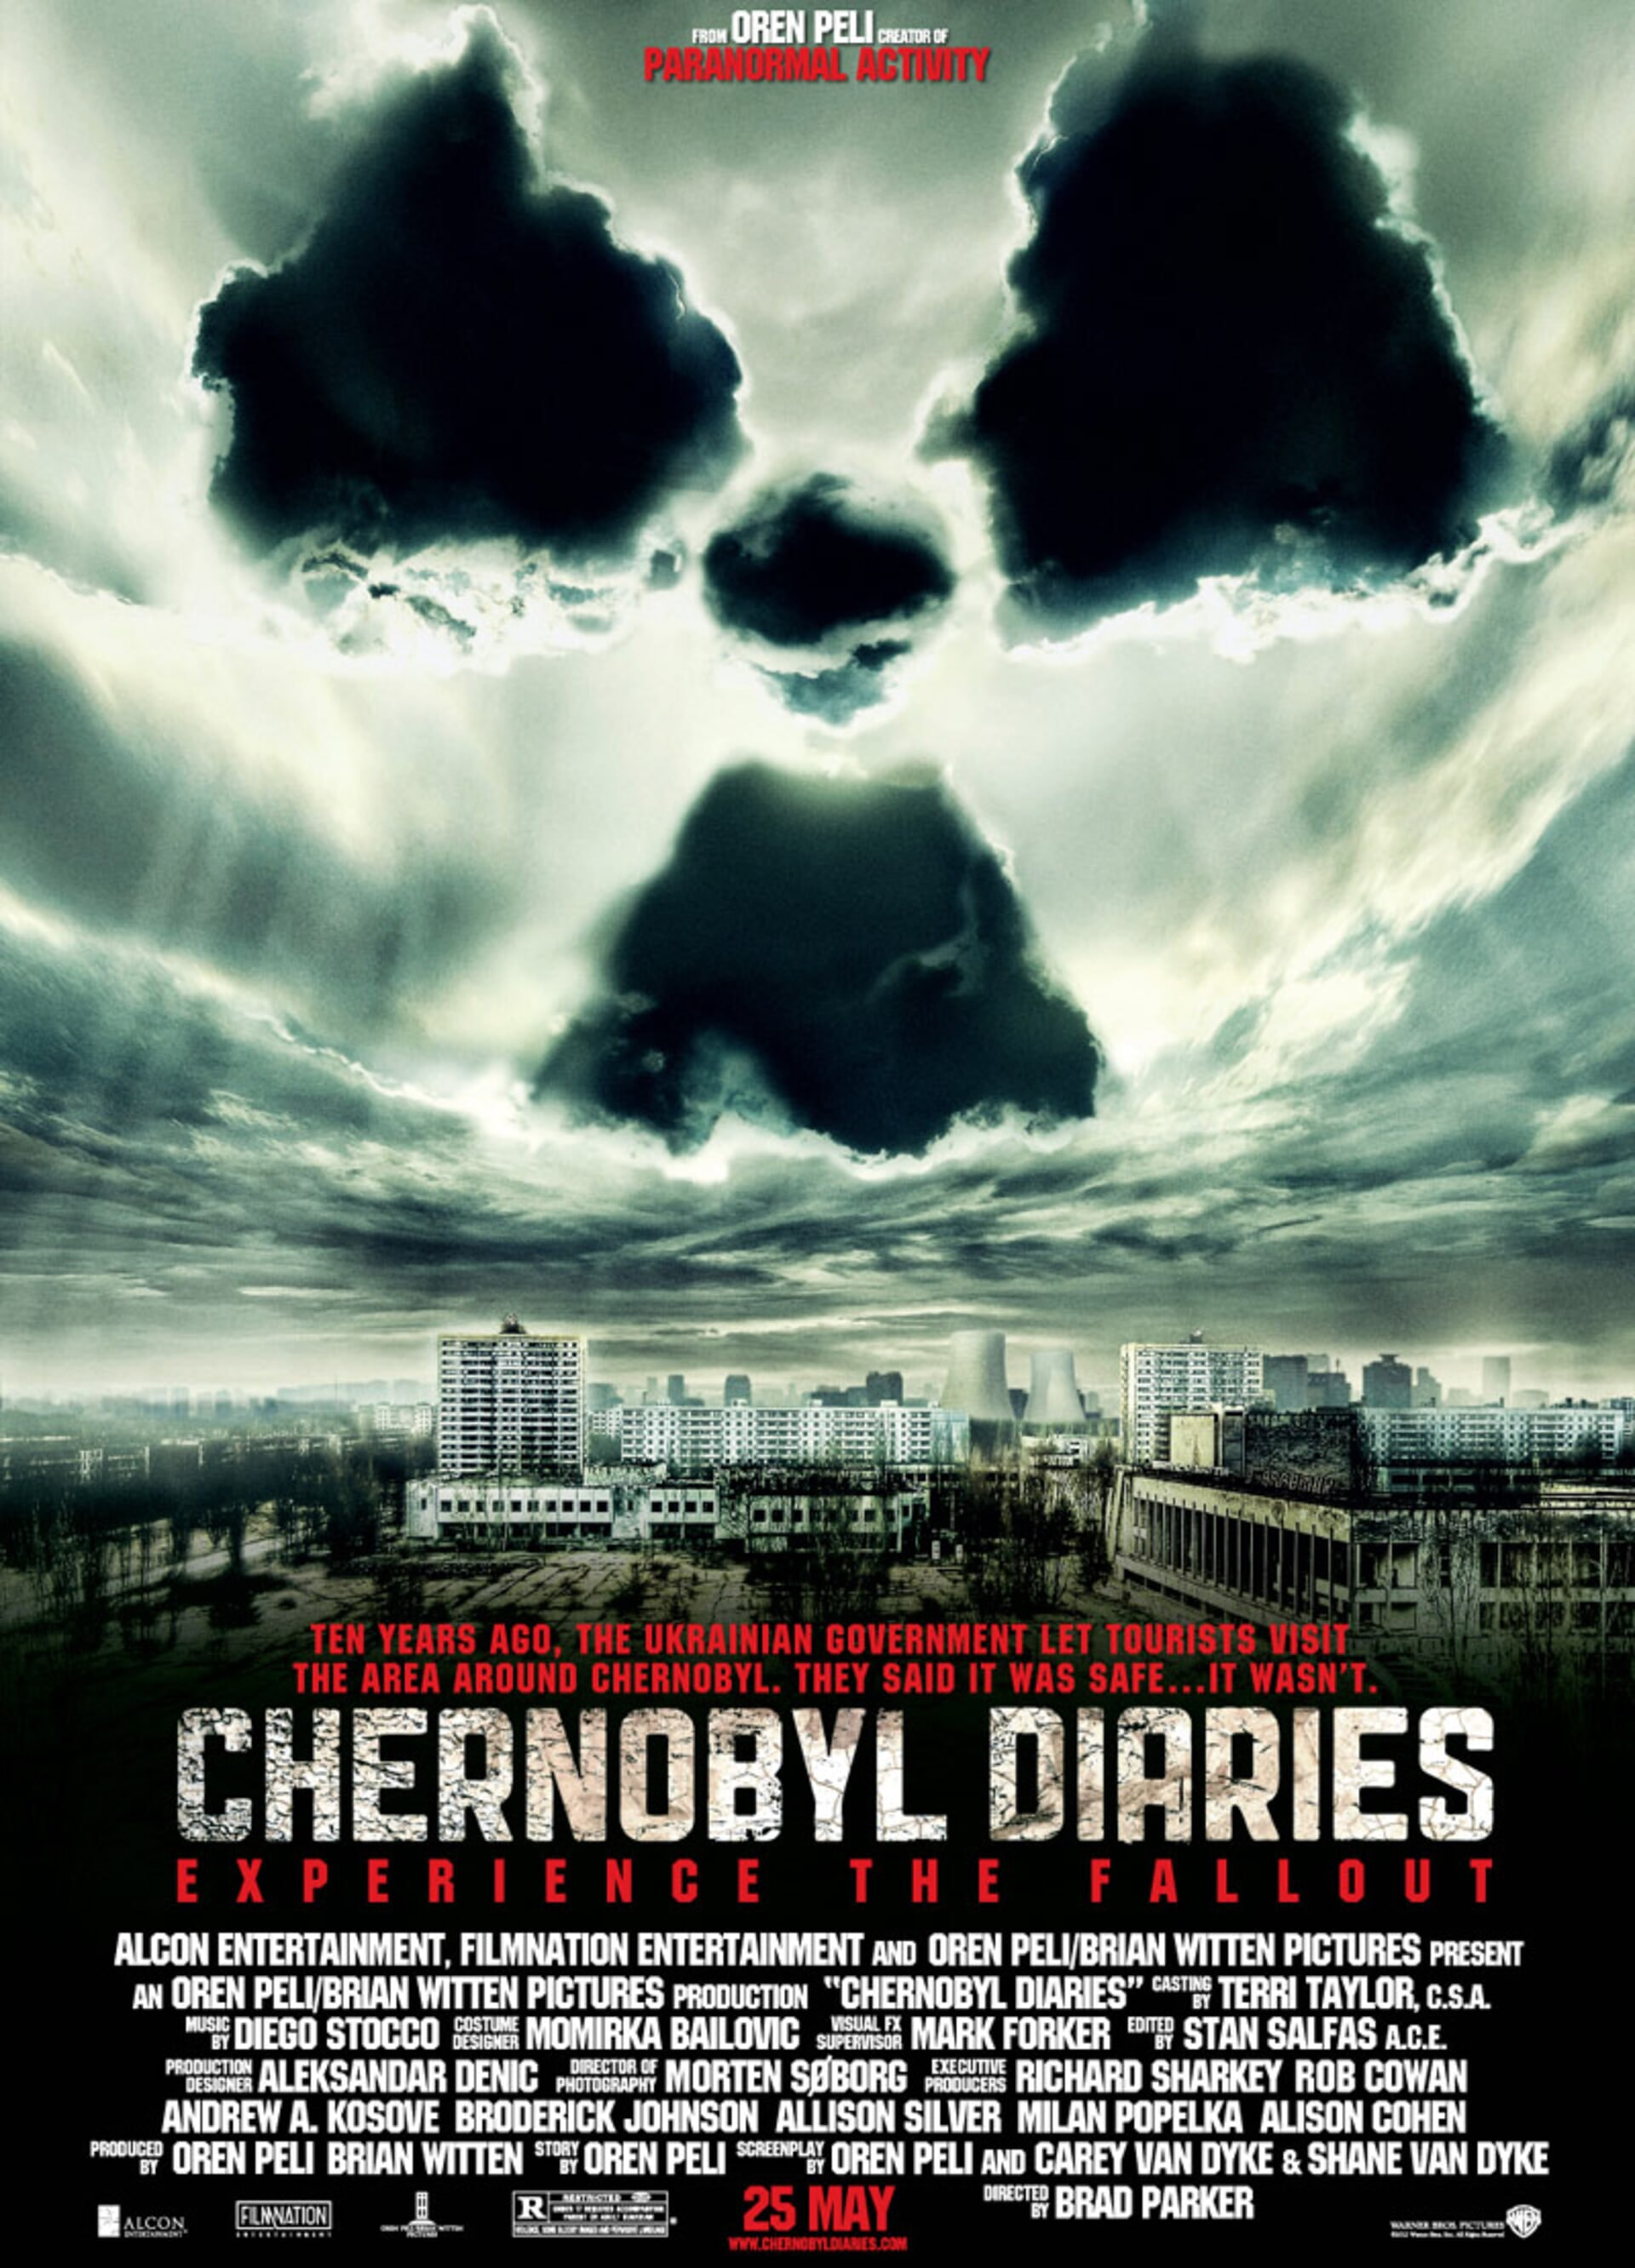 Chernobyl Diaries - Poster 1